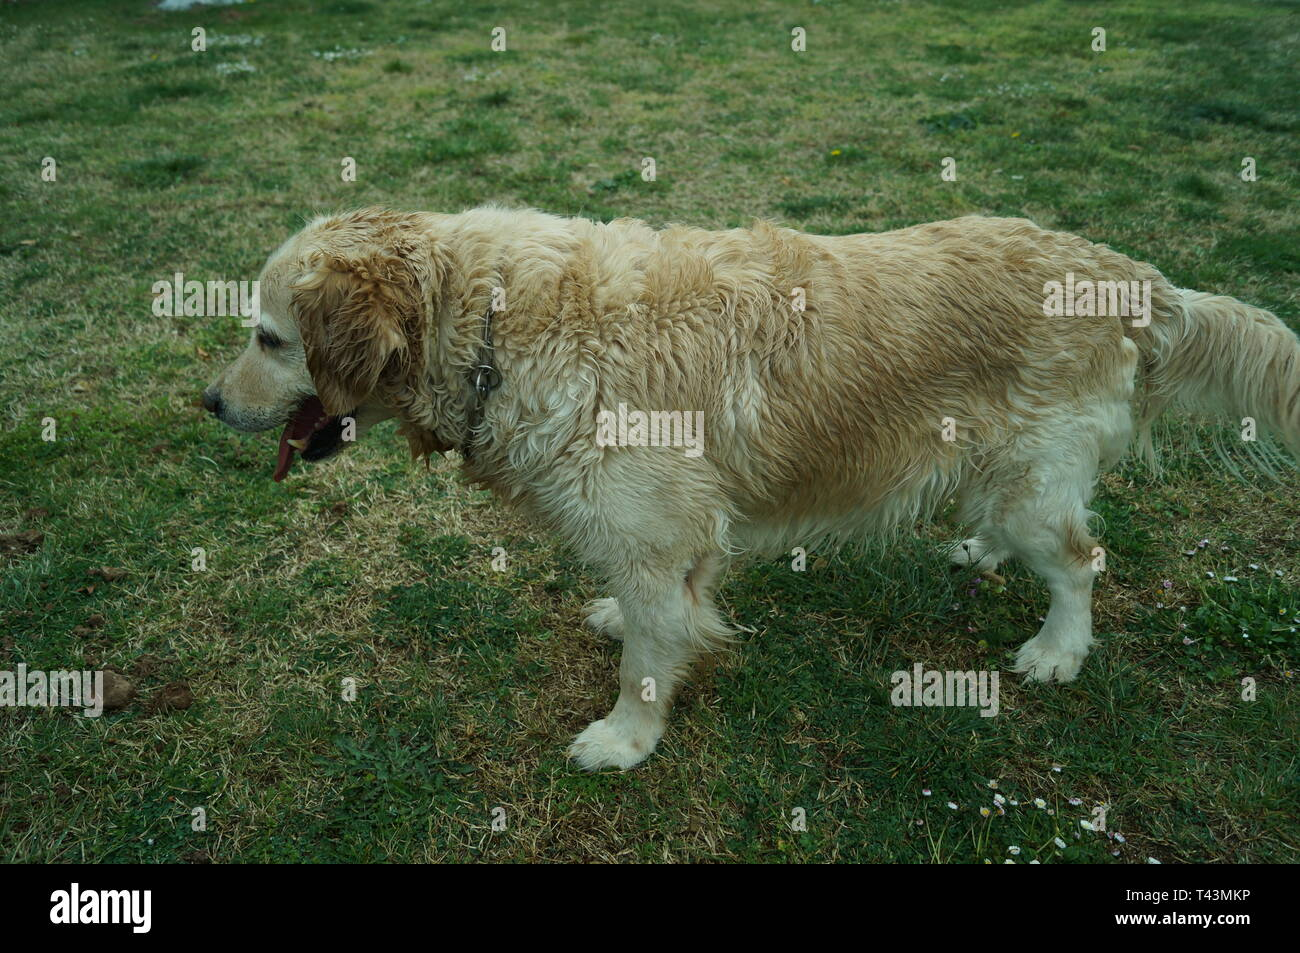 De Pie High Resolution Stock Photography And Images Alamy